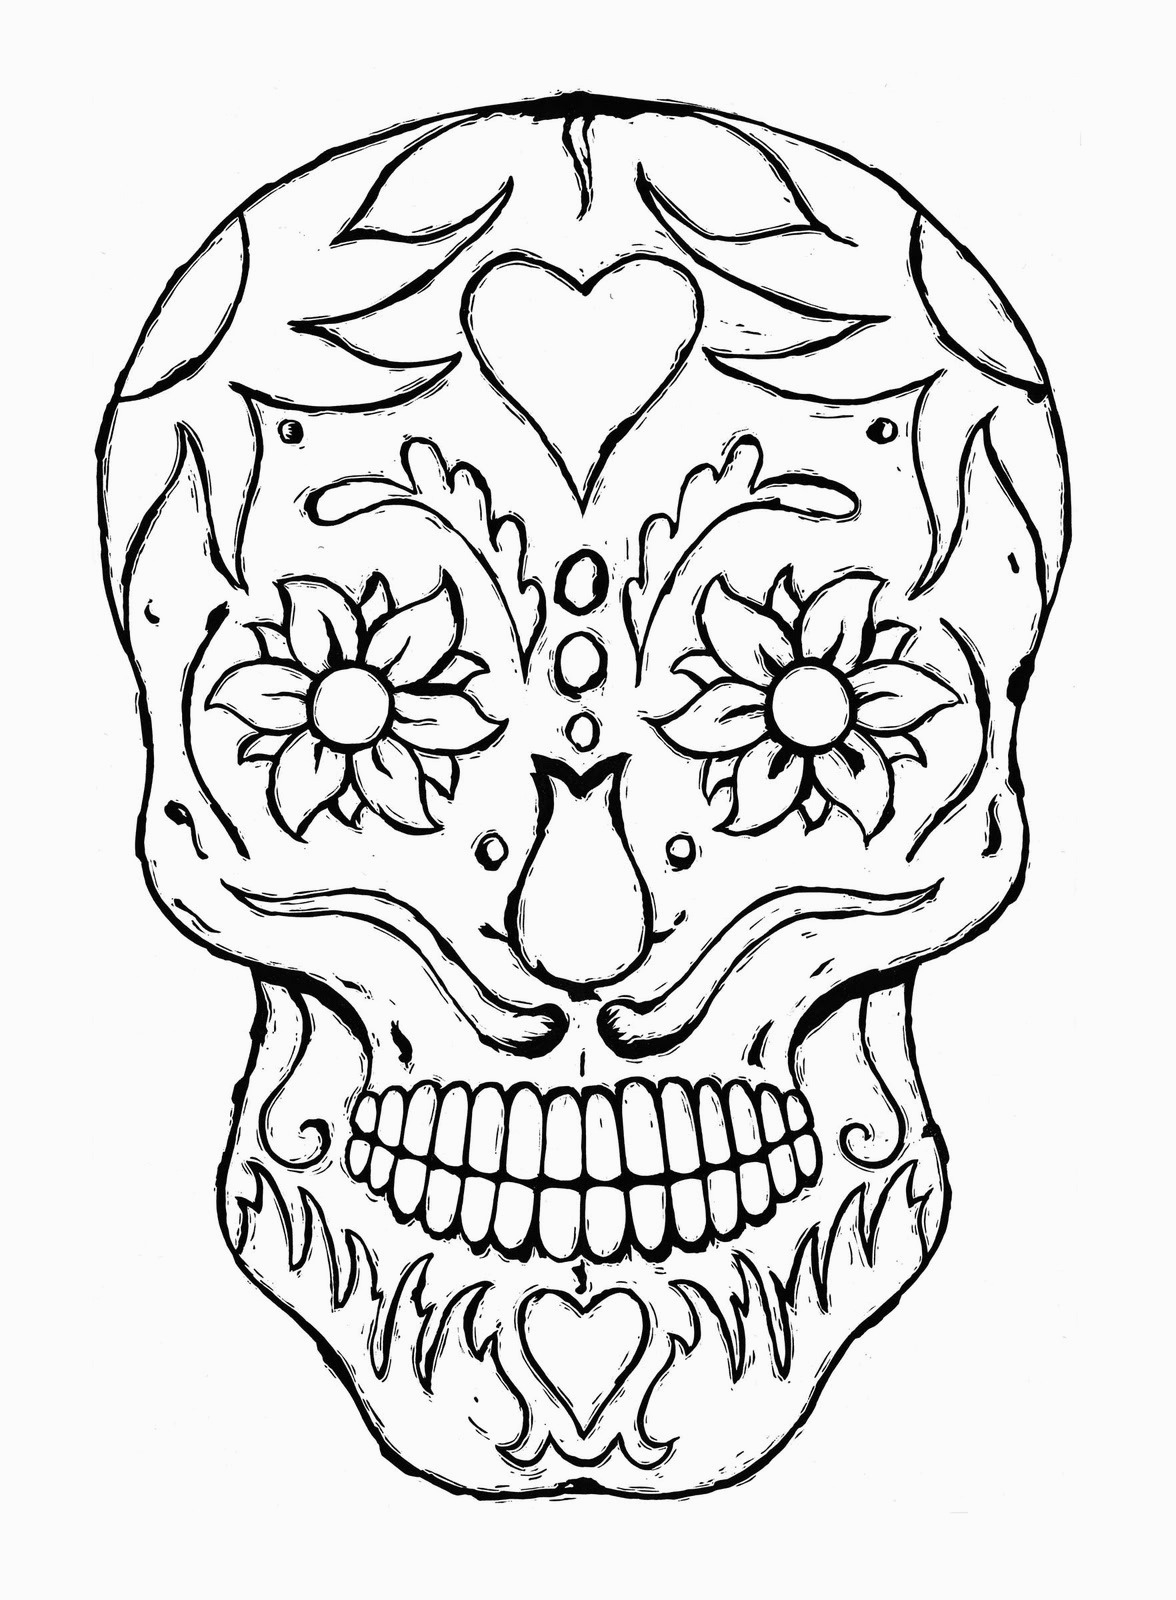 Skull Color Pages Free Printable Skull Coloring Pages For Kids For Coloring Pages Of